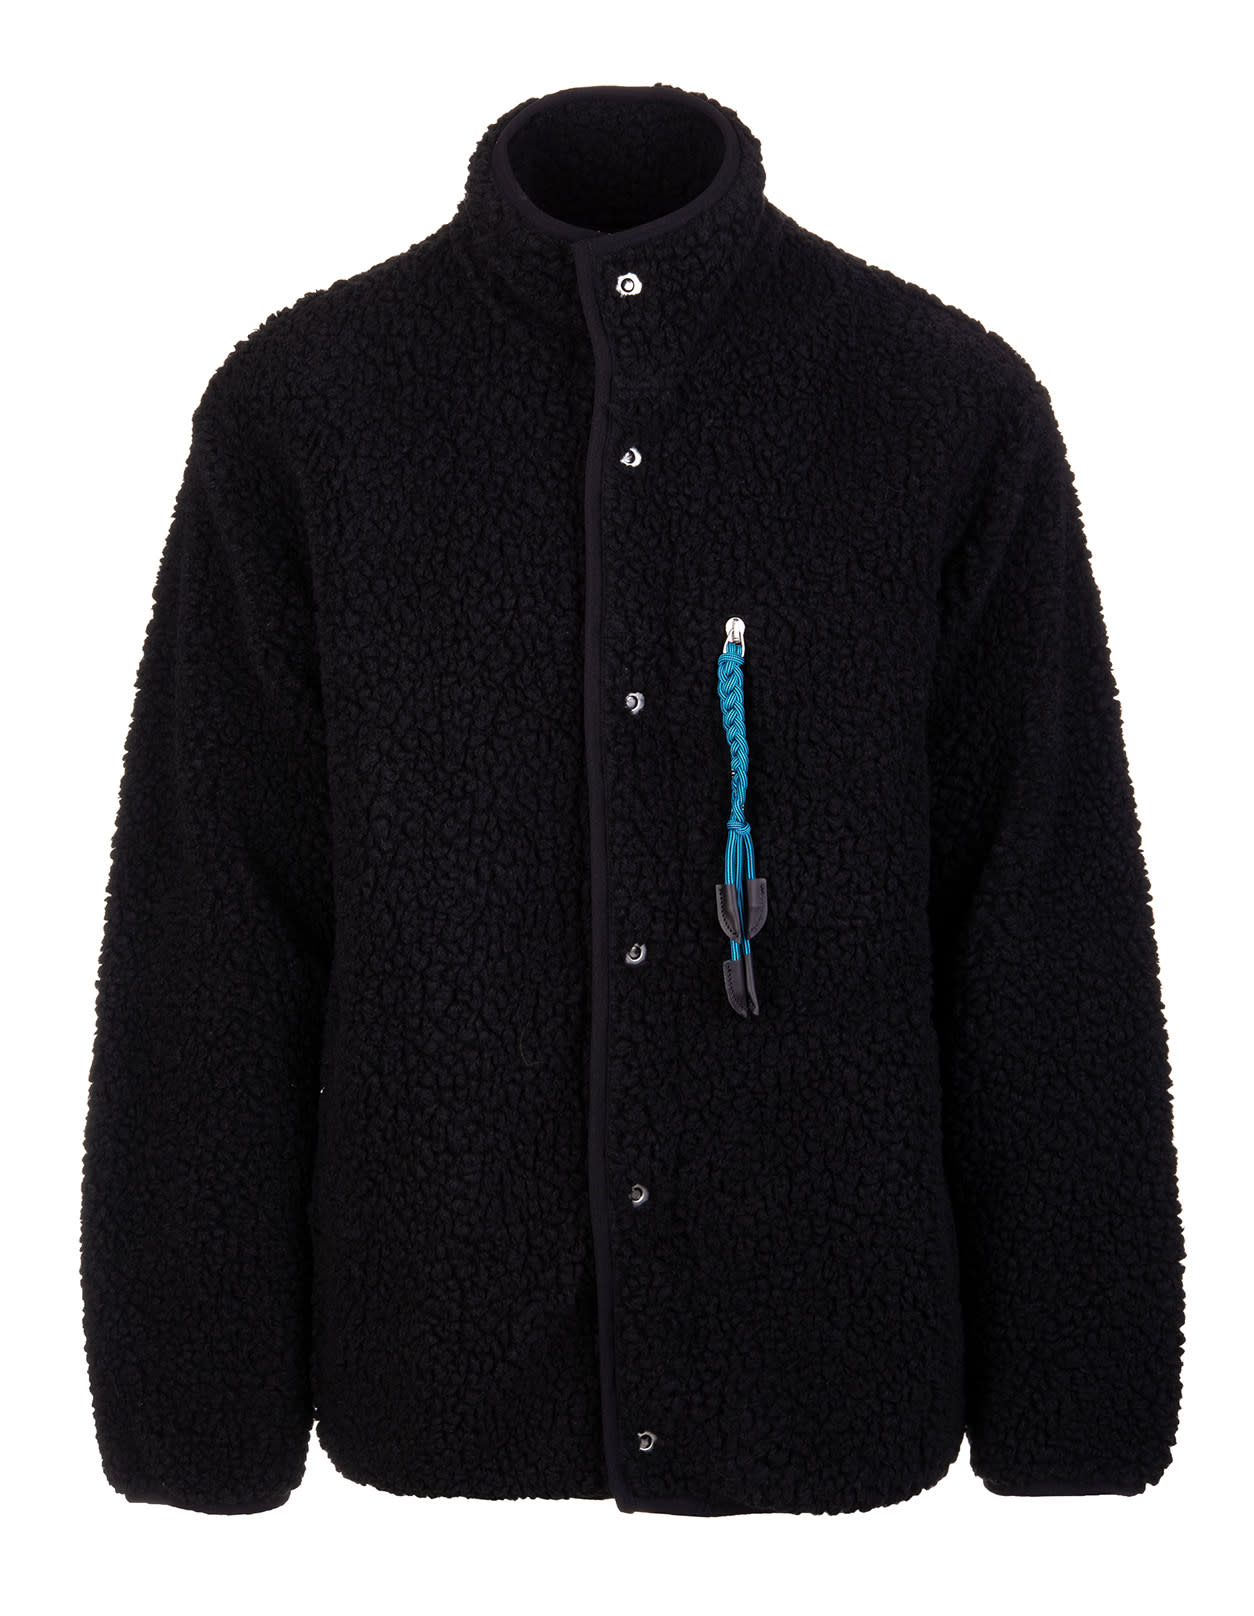 Palm Angels Man Black Teddy Jacket With Contrast Detail